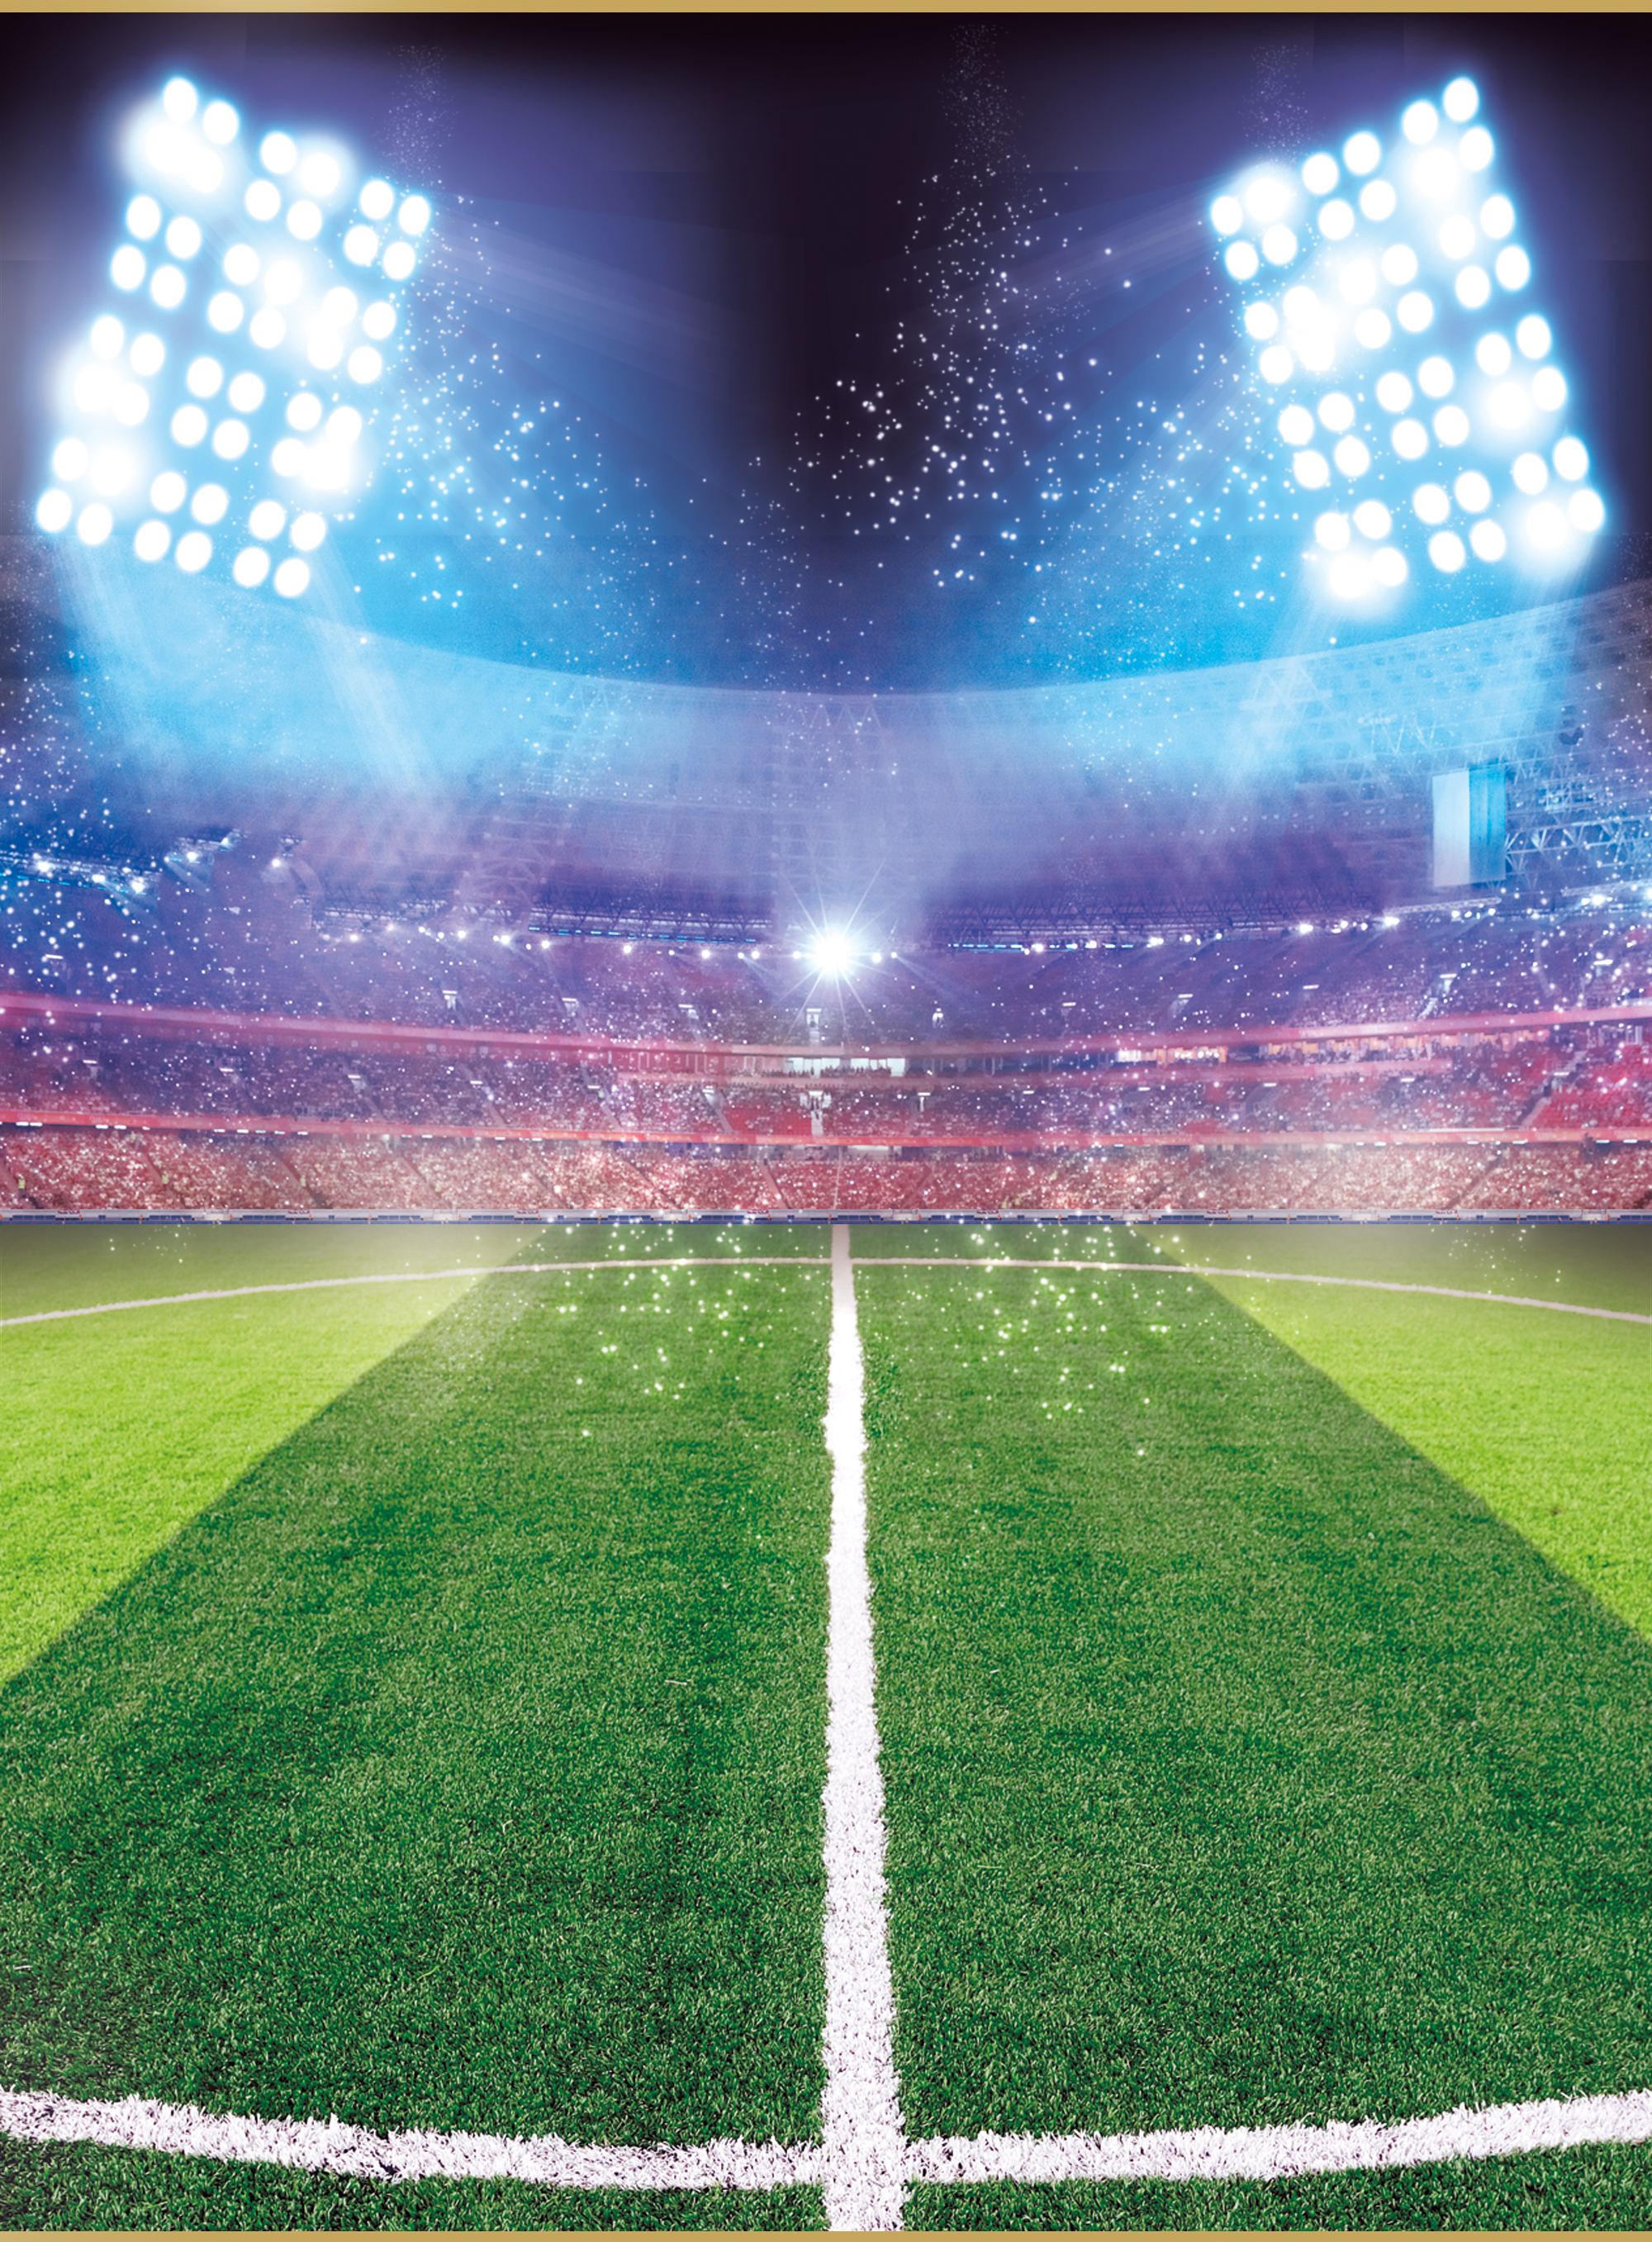 Free Download Wallpaper 3d Graphic Advertising Posters Soccer Field Background Football